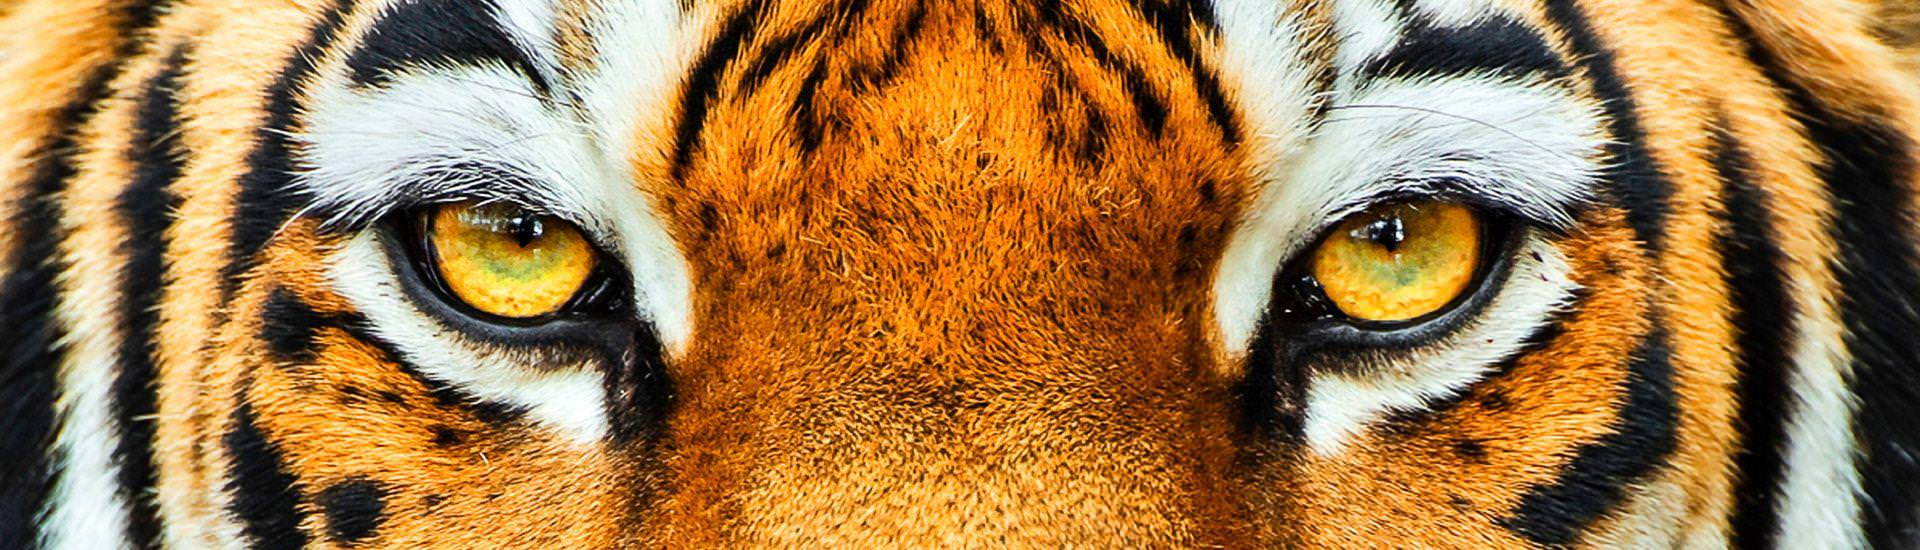 Tiger, Close up (© Christine Gehrig, iStockphoto.com / Chamäleon)